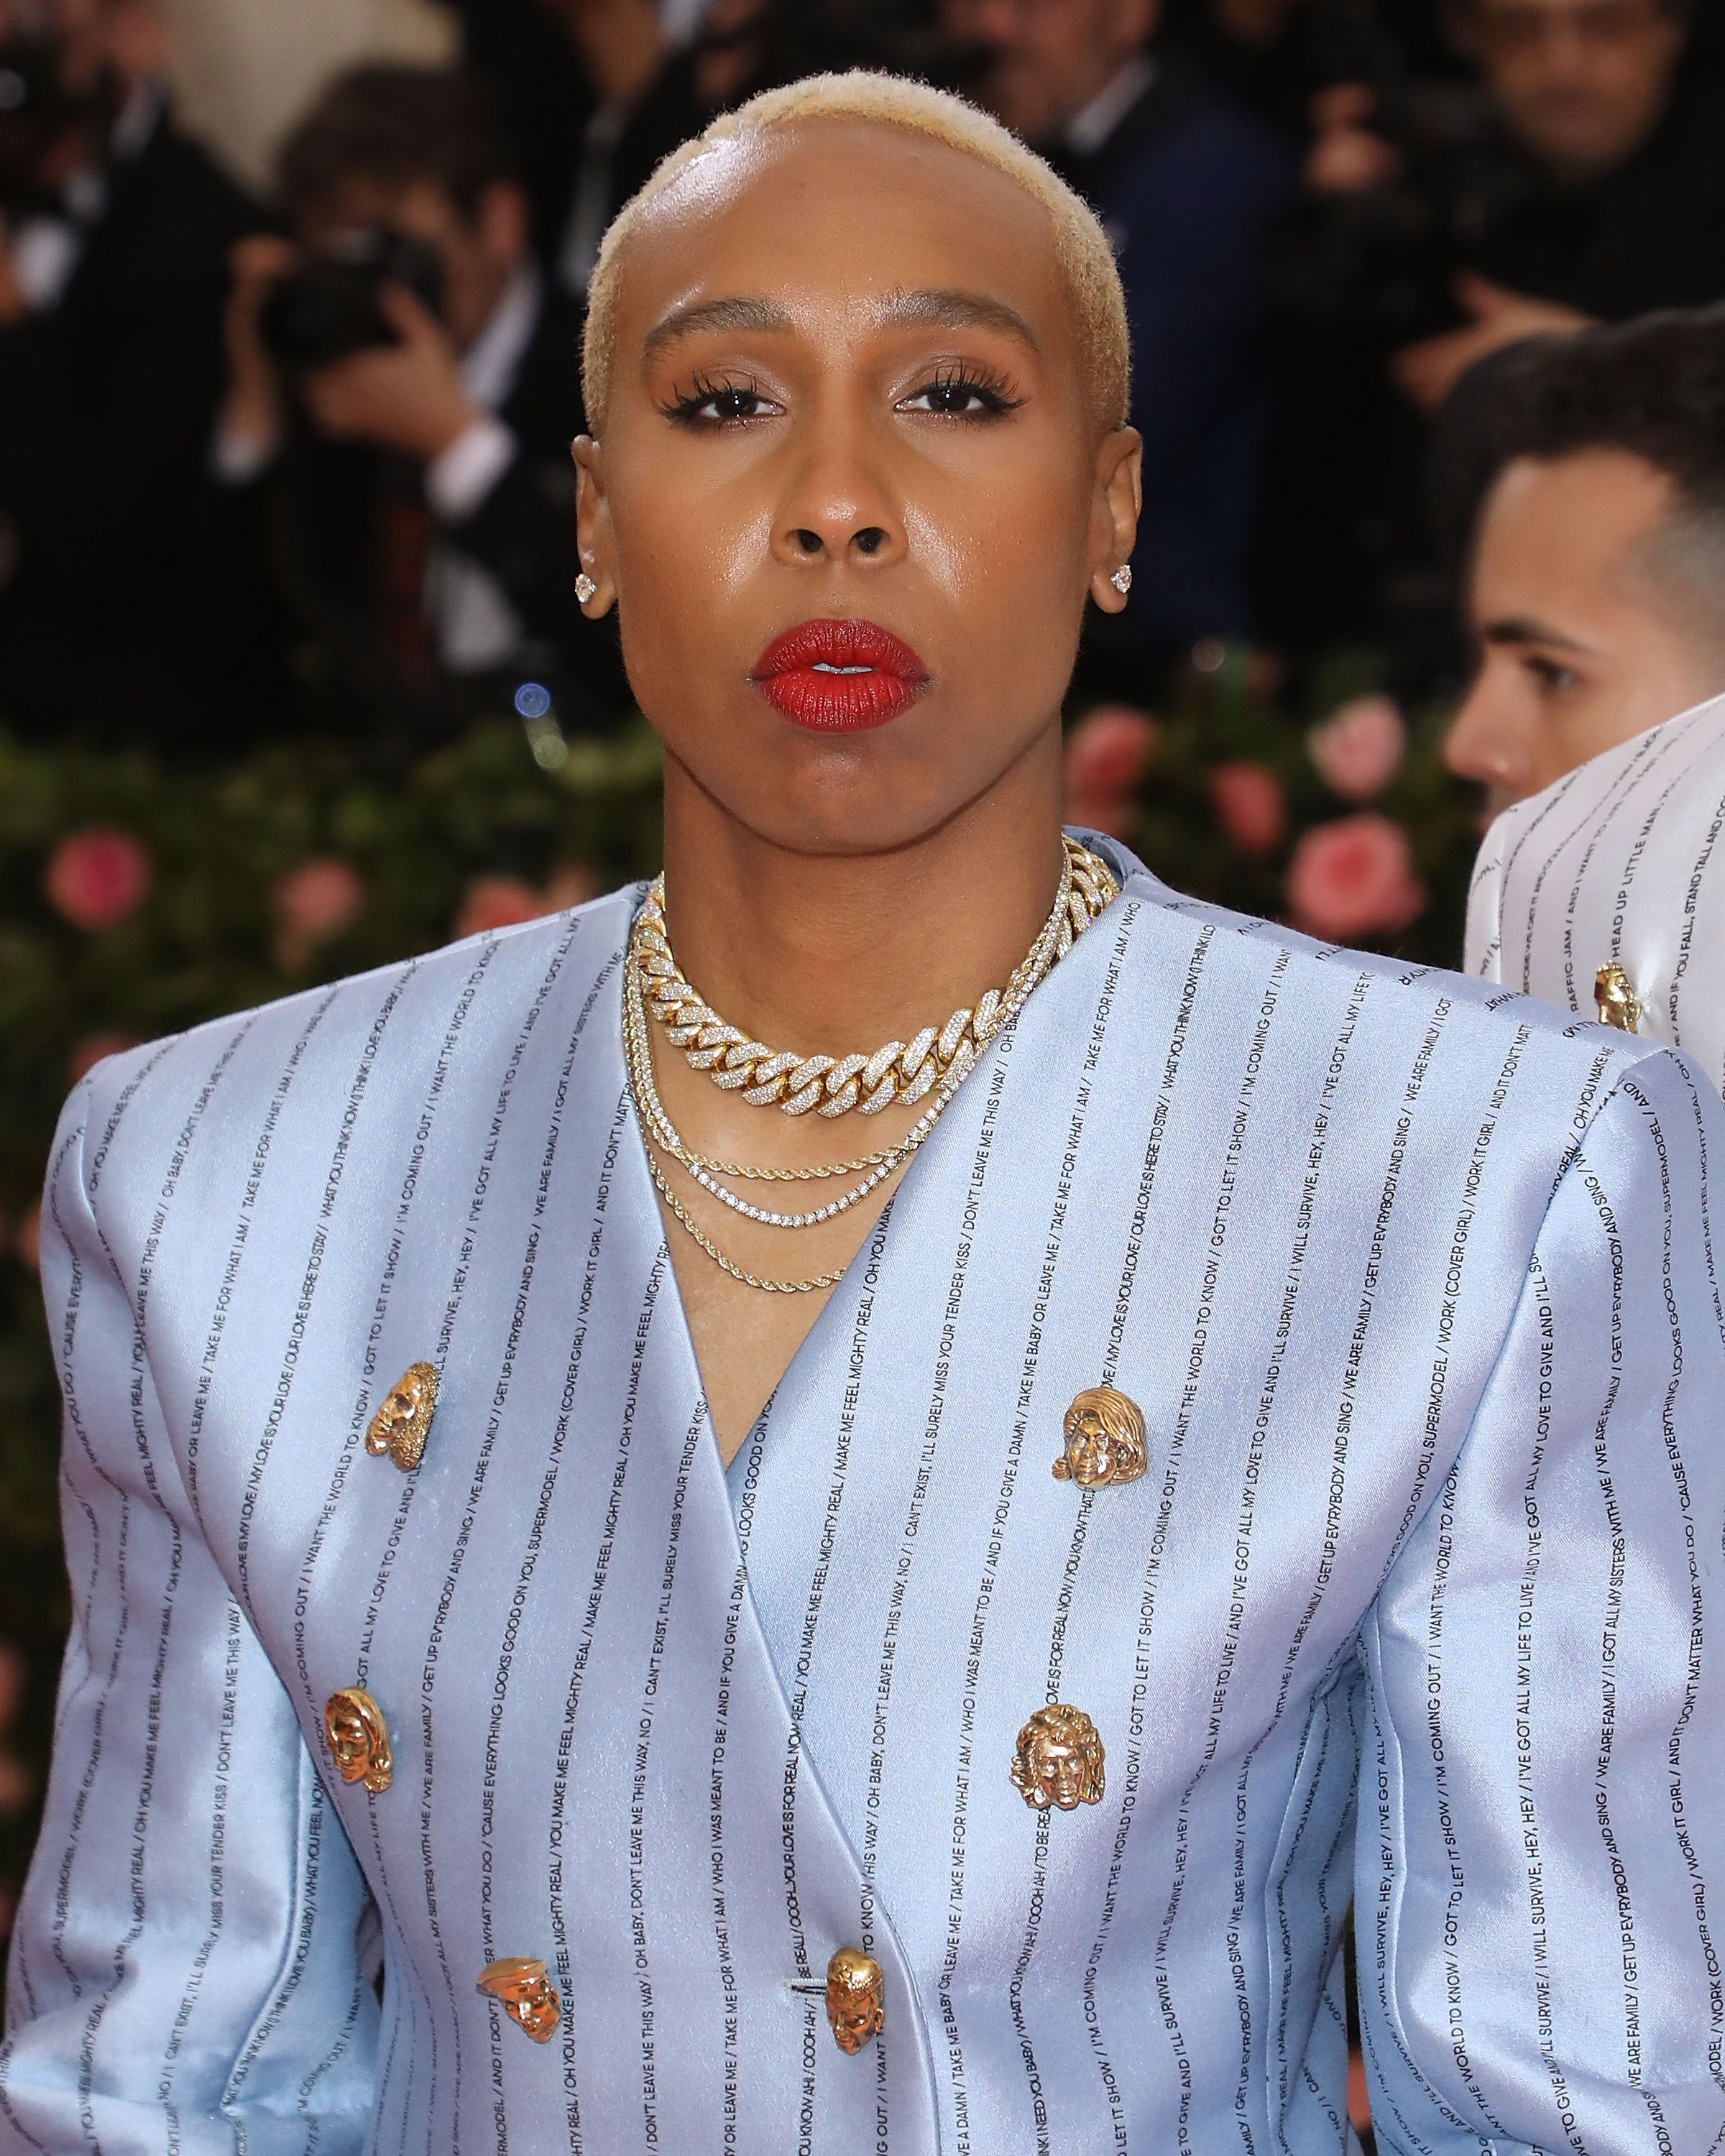 Lena Waithe's Met Gala Suit Bore An Important Message On The